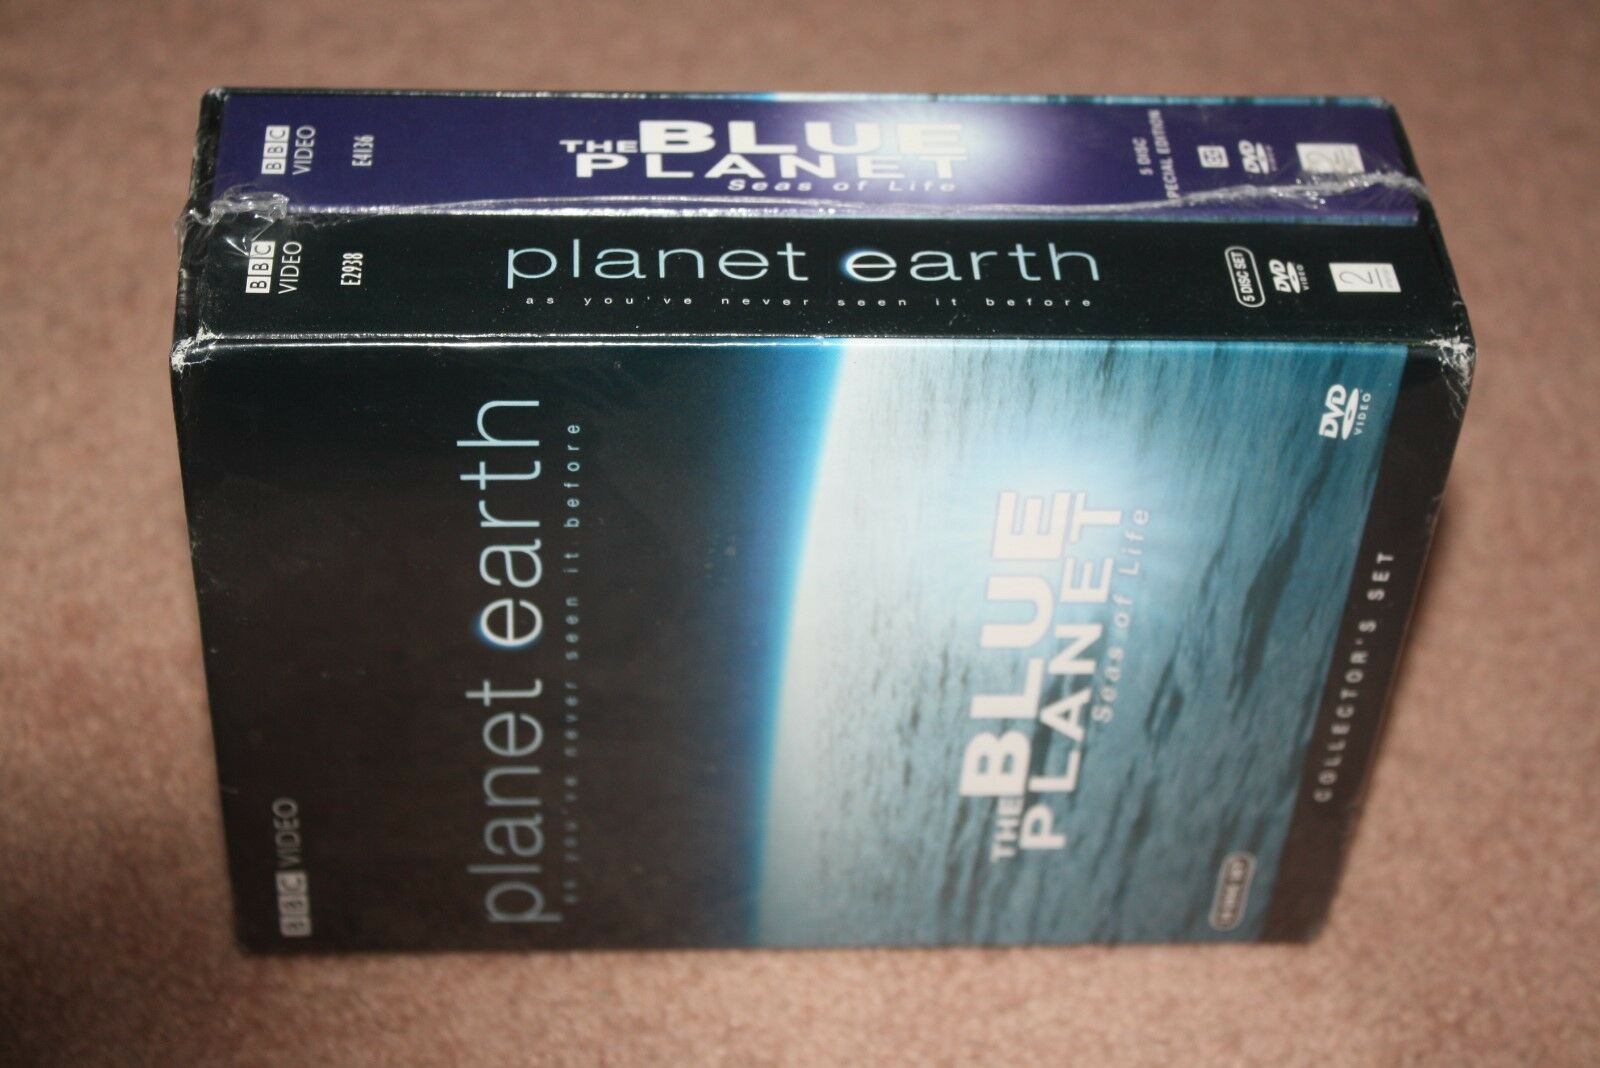 Planet Earth/The Blue Planet: Seas of Life (DVD, 2007, 10-Disc Set) *Brand New*